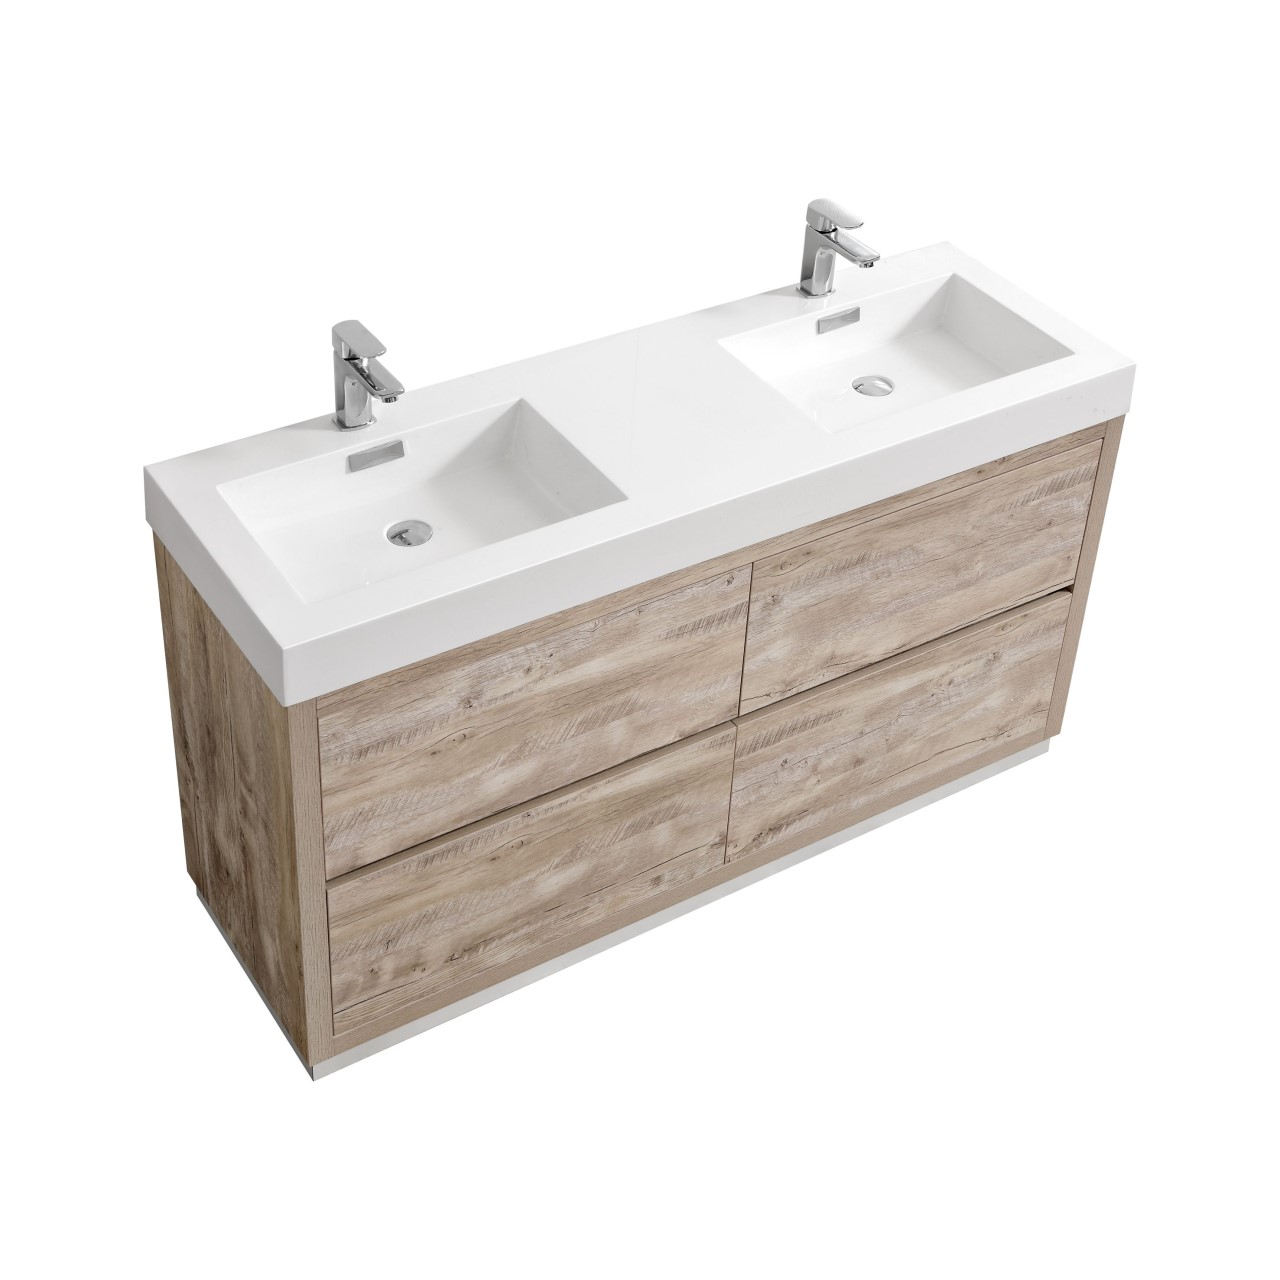 "Modern Lux 60"" Single Sink Nature Wood Free Standing Modern Bathroom Vanity"